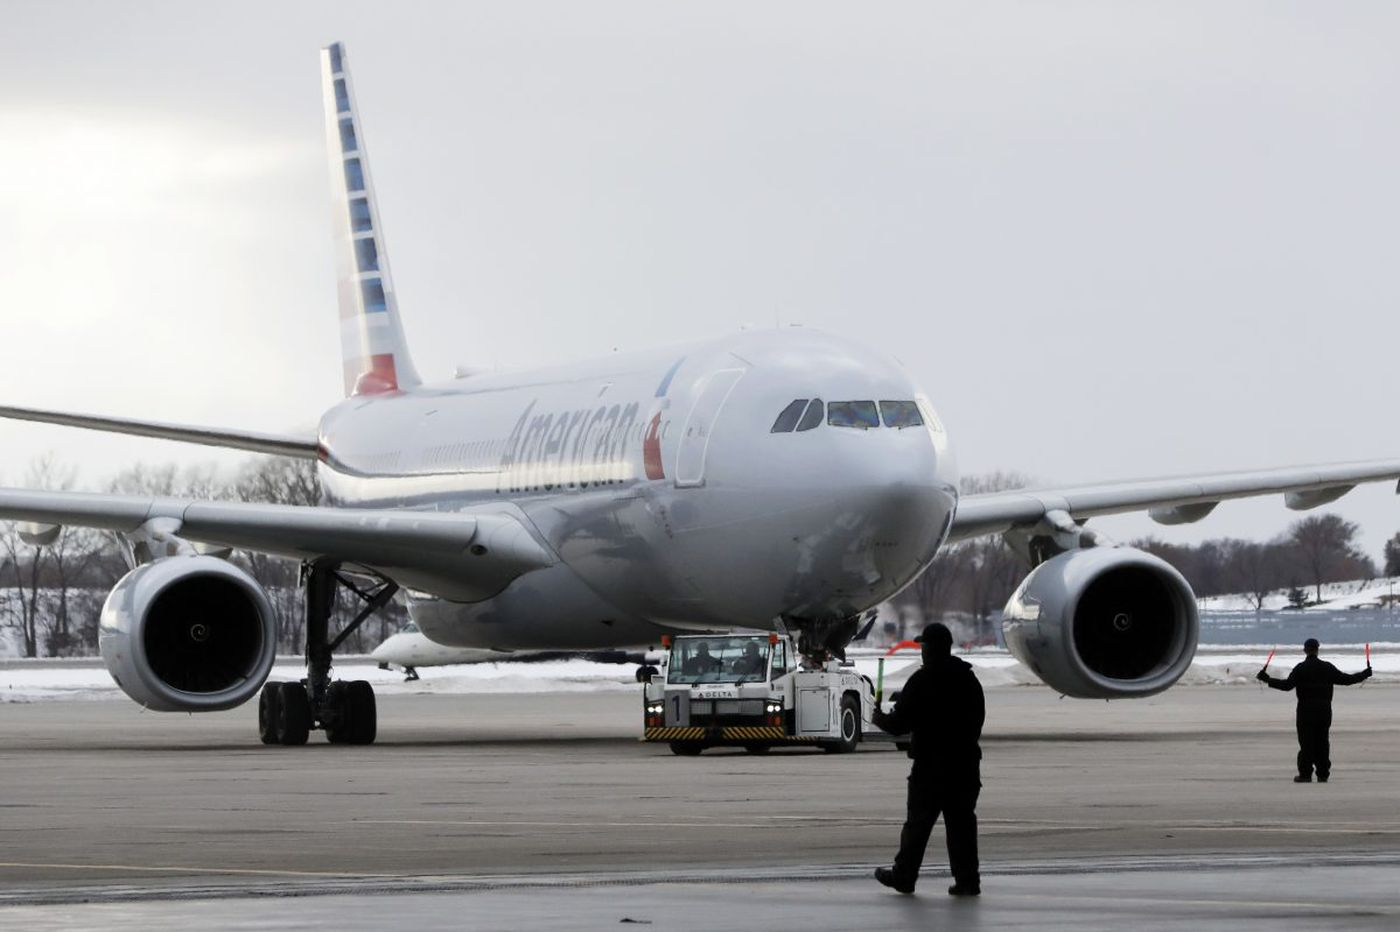 American adds flights to Super Bowl, includes rally towels